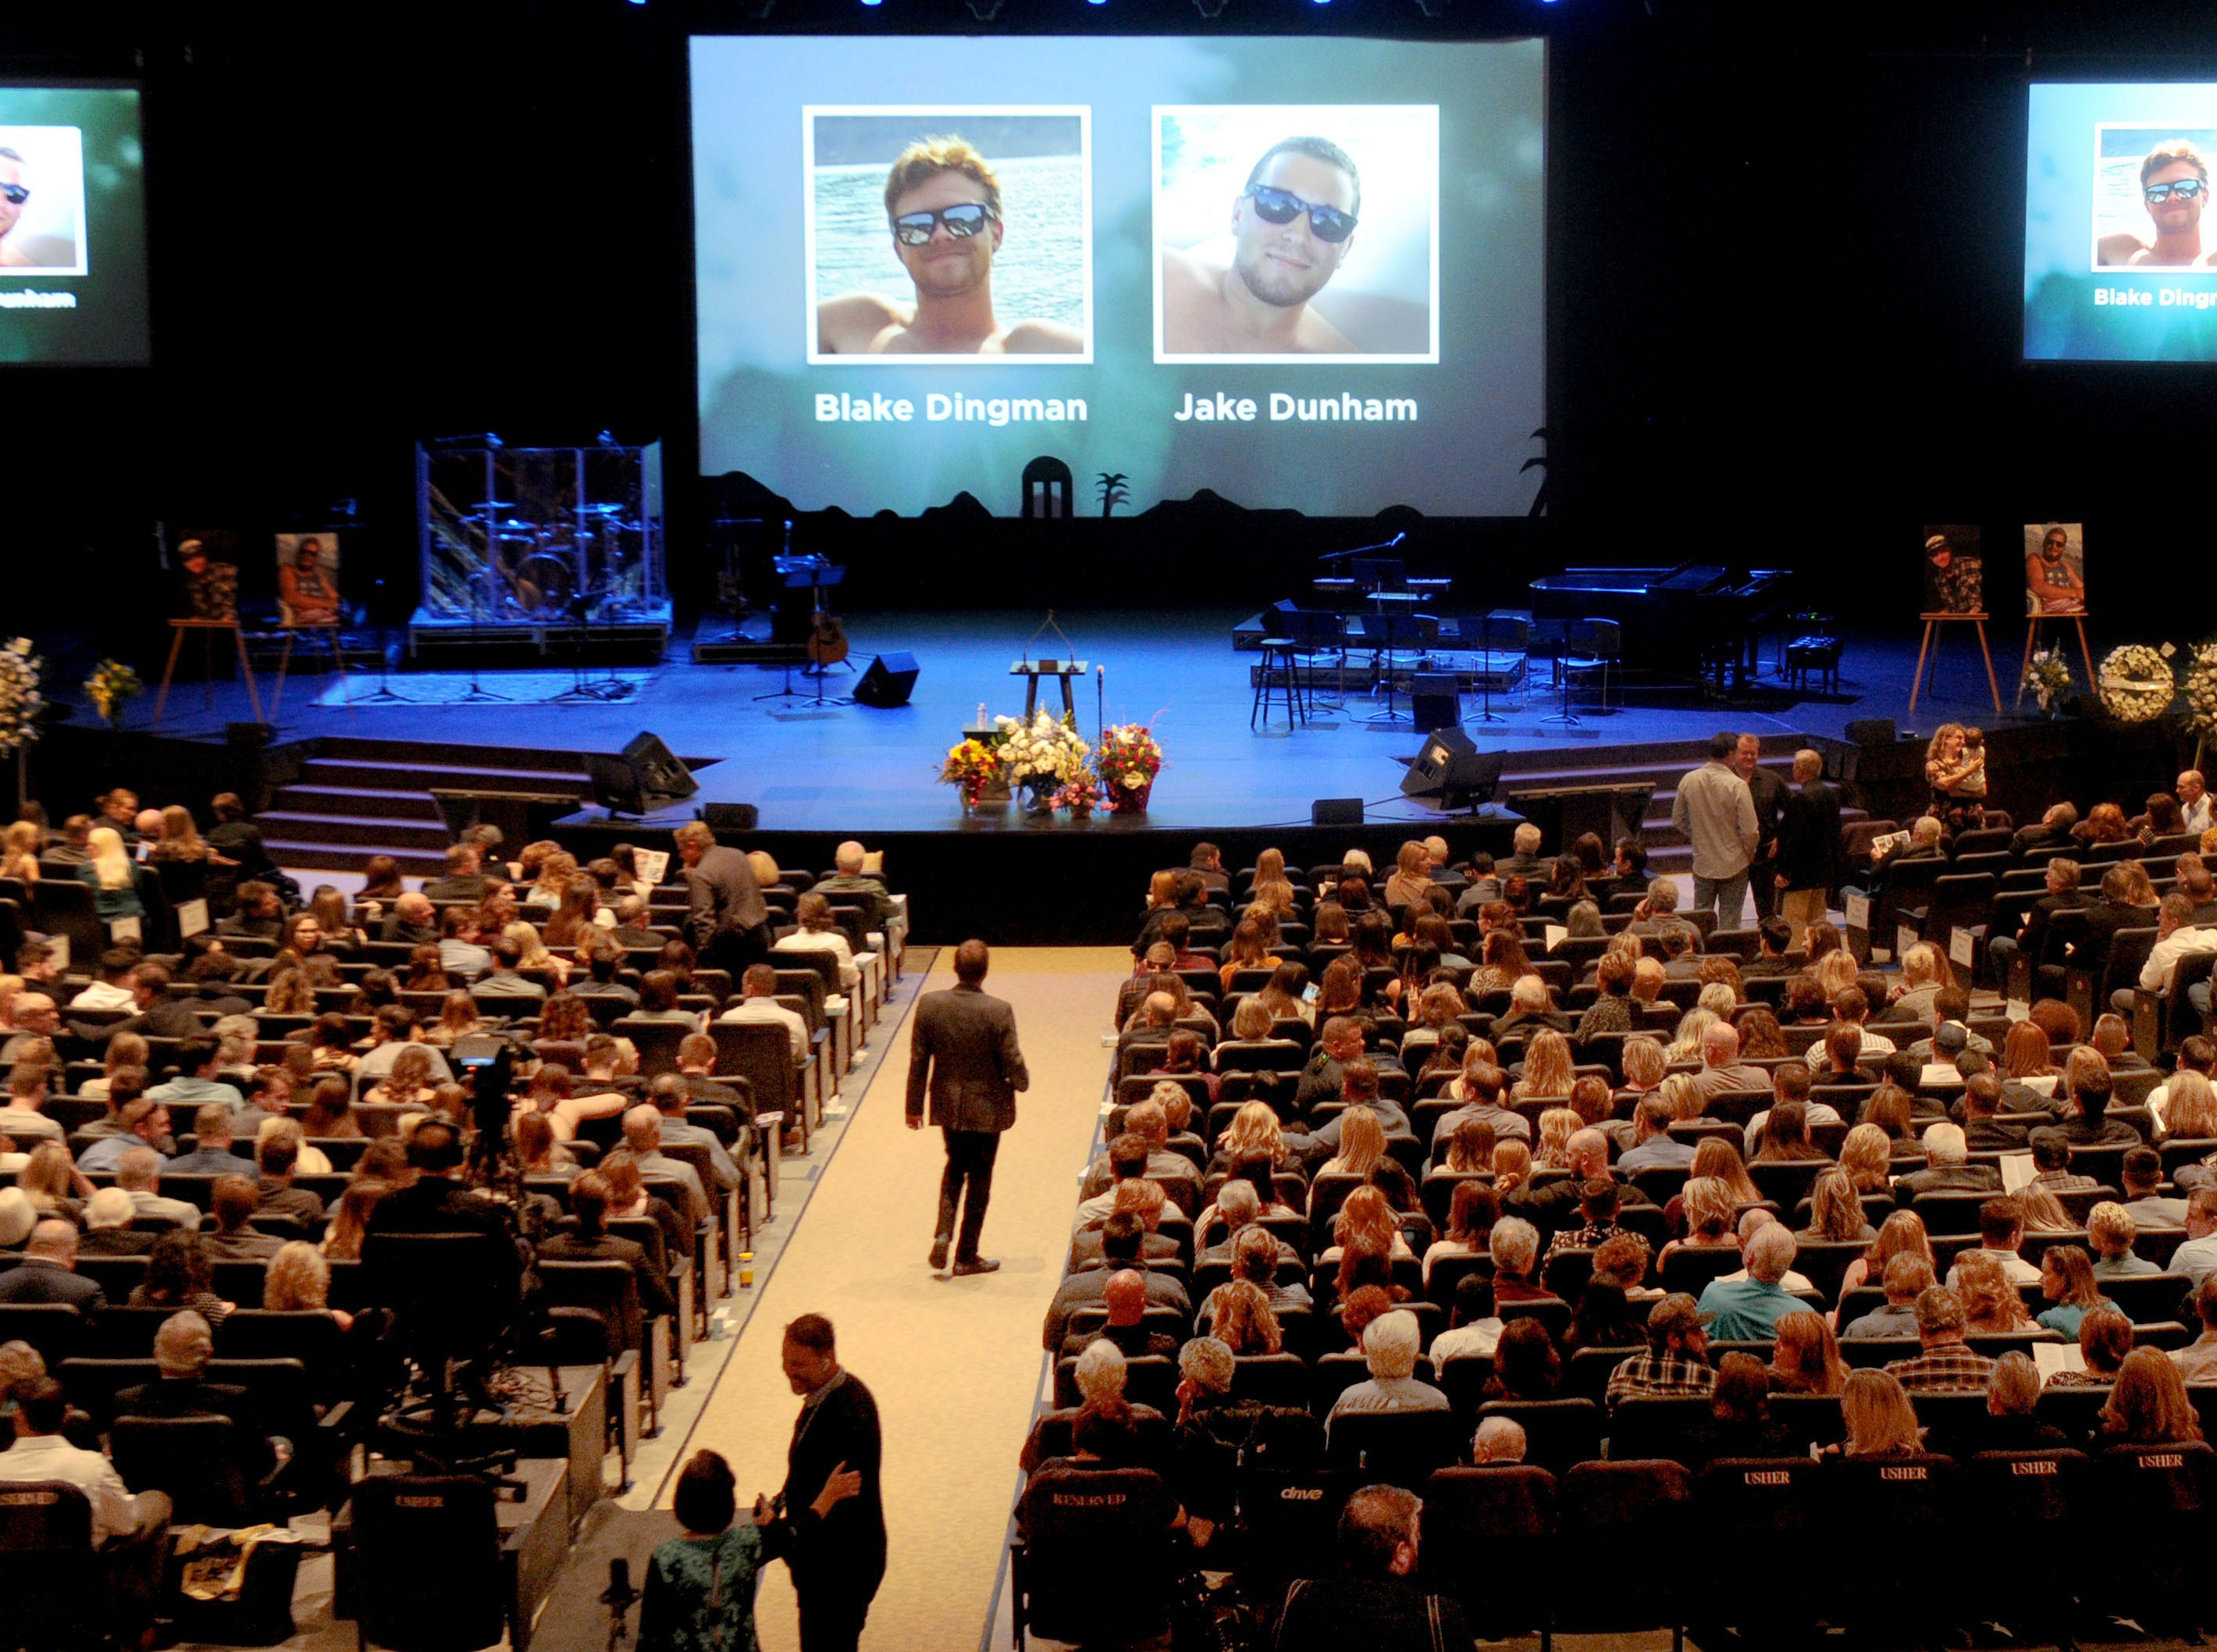 The memorial service for Borderline Bar & Grill shooting victims Blake Dingman and Jake Dunham was held at Calvary Community Church in Westlake Village.